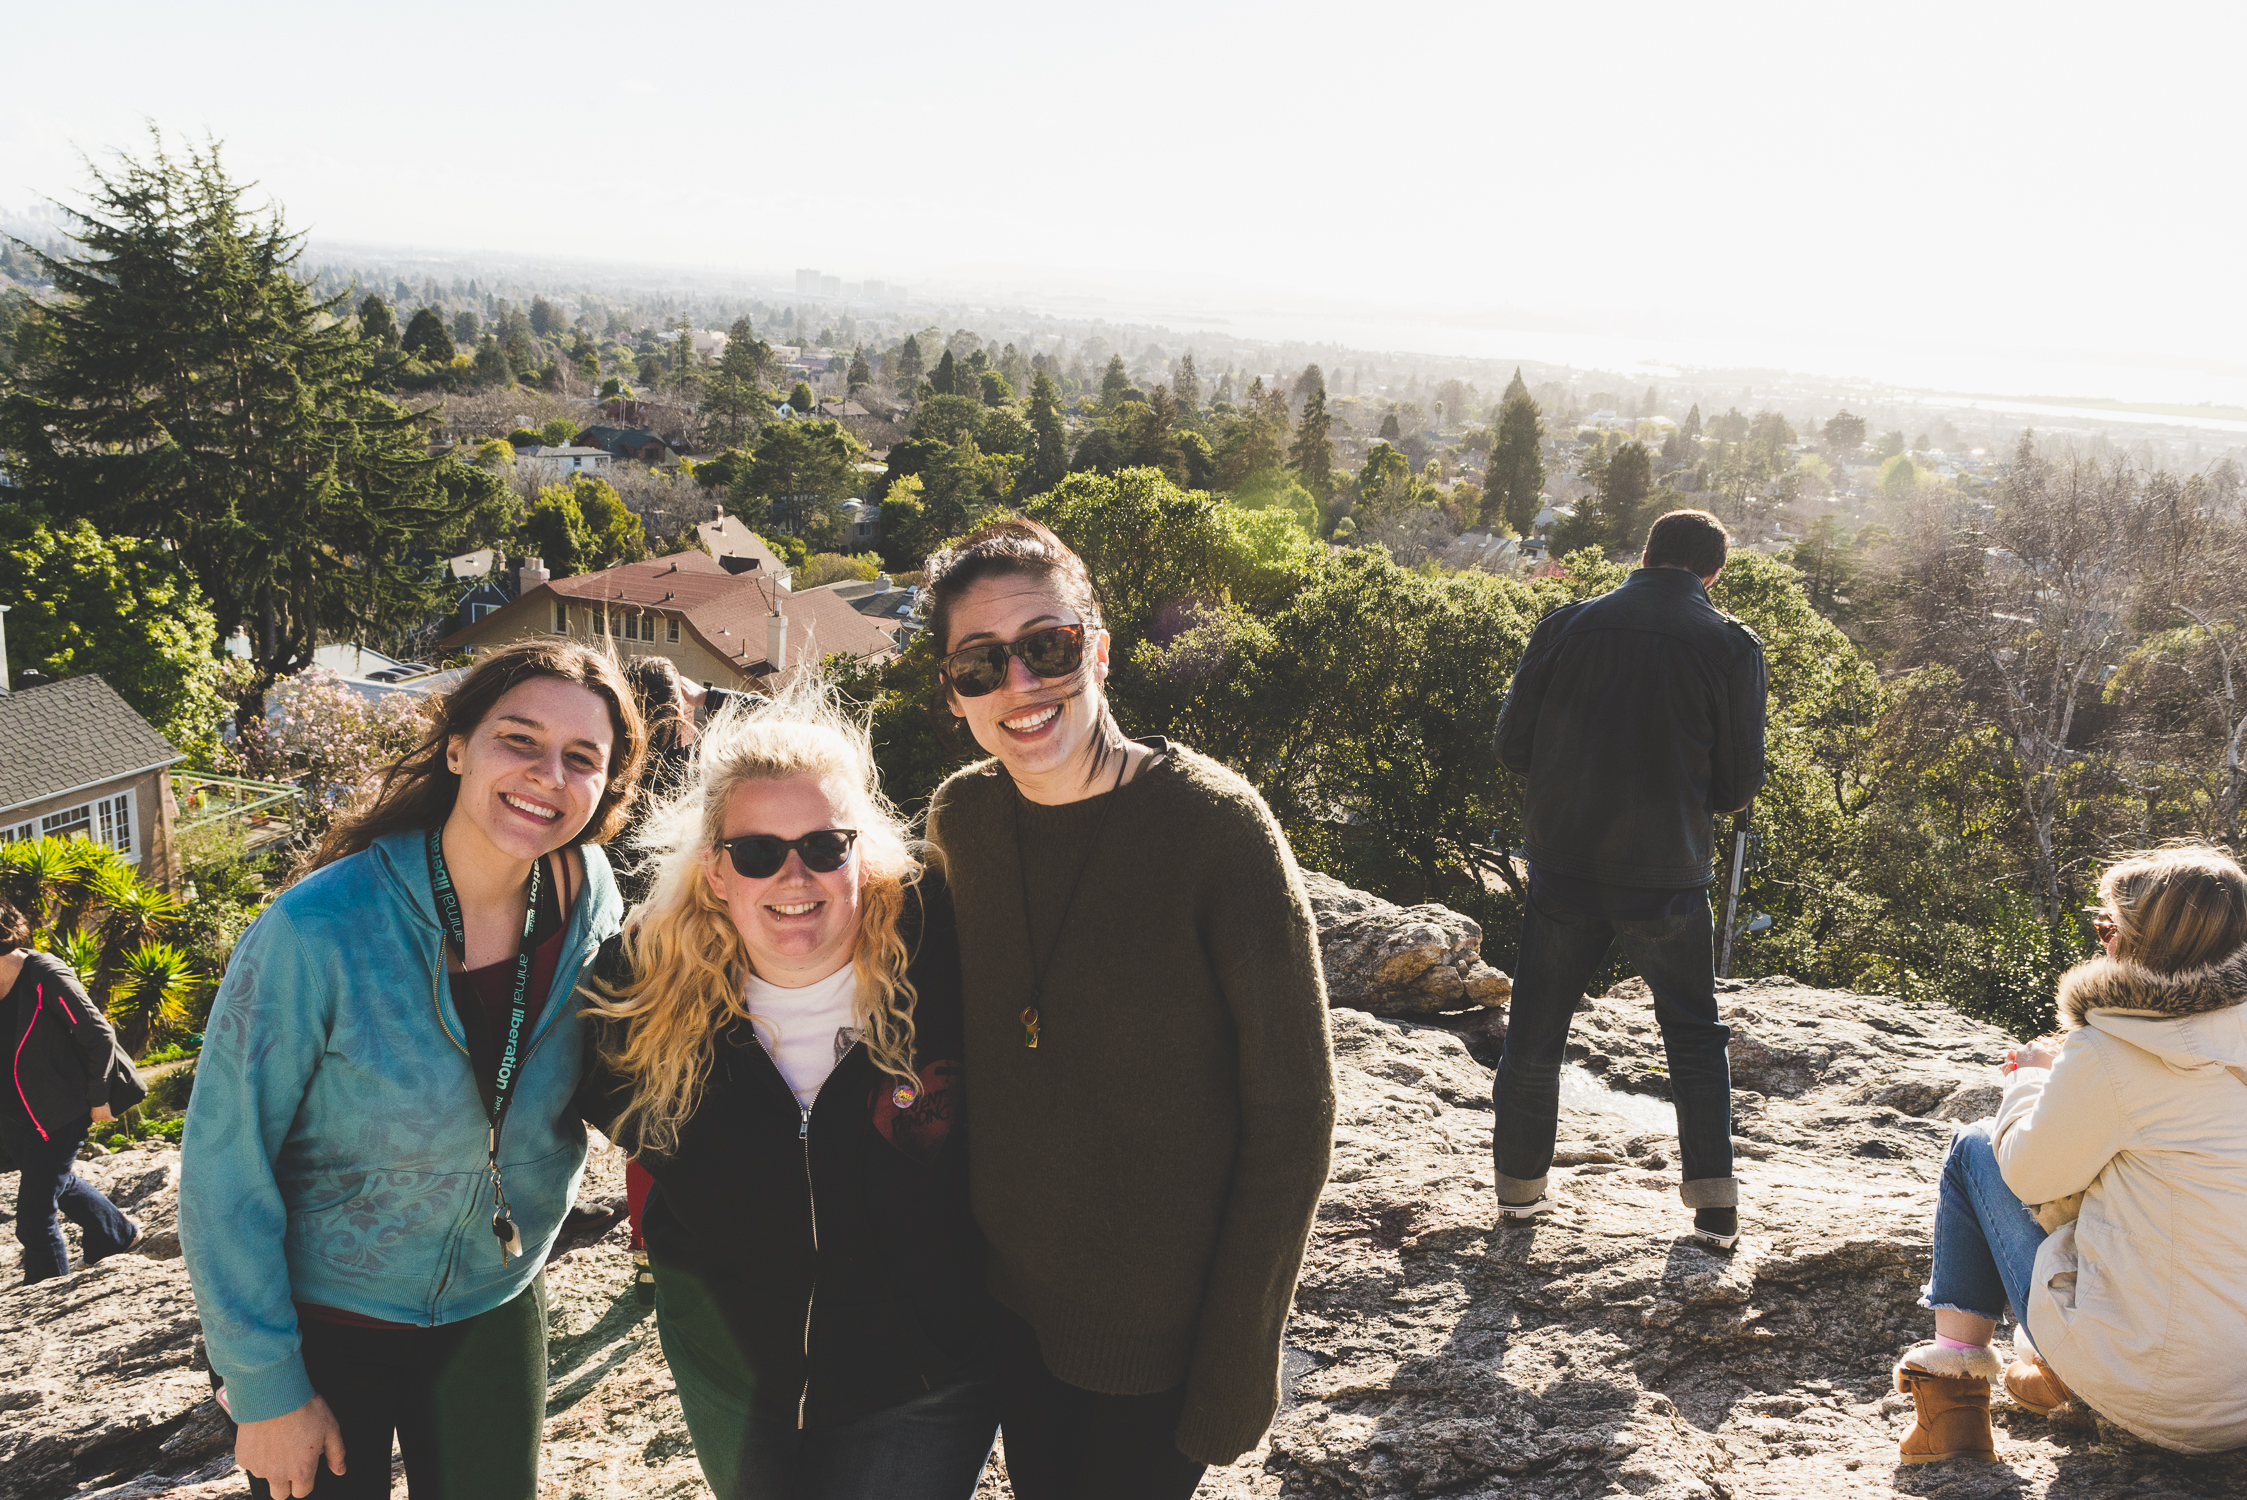 On top of Indian Rock with my tourmates Emily (left) and Karla (right) / 1/31/16 / Berkeley, CA